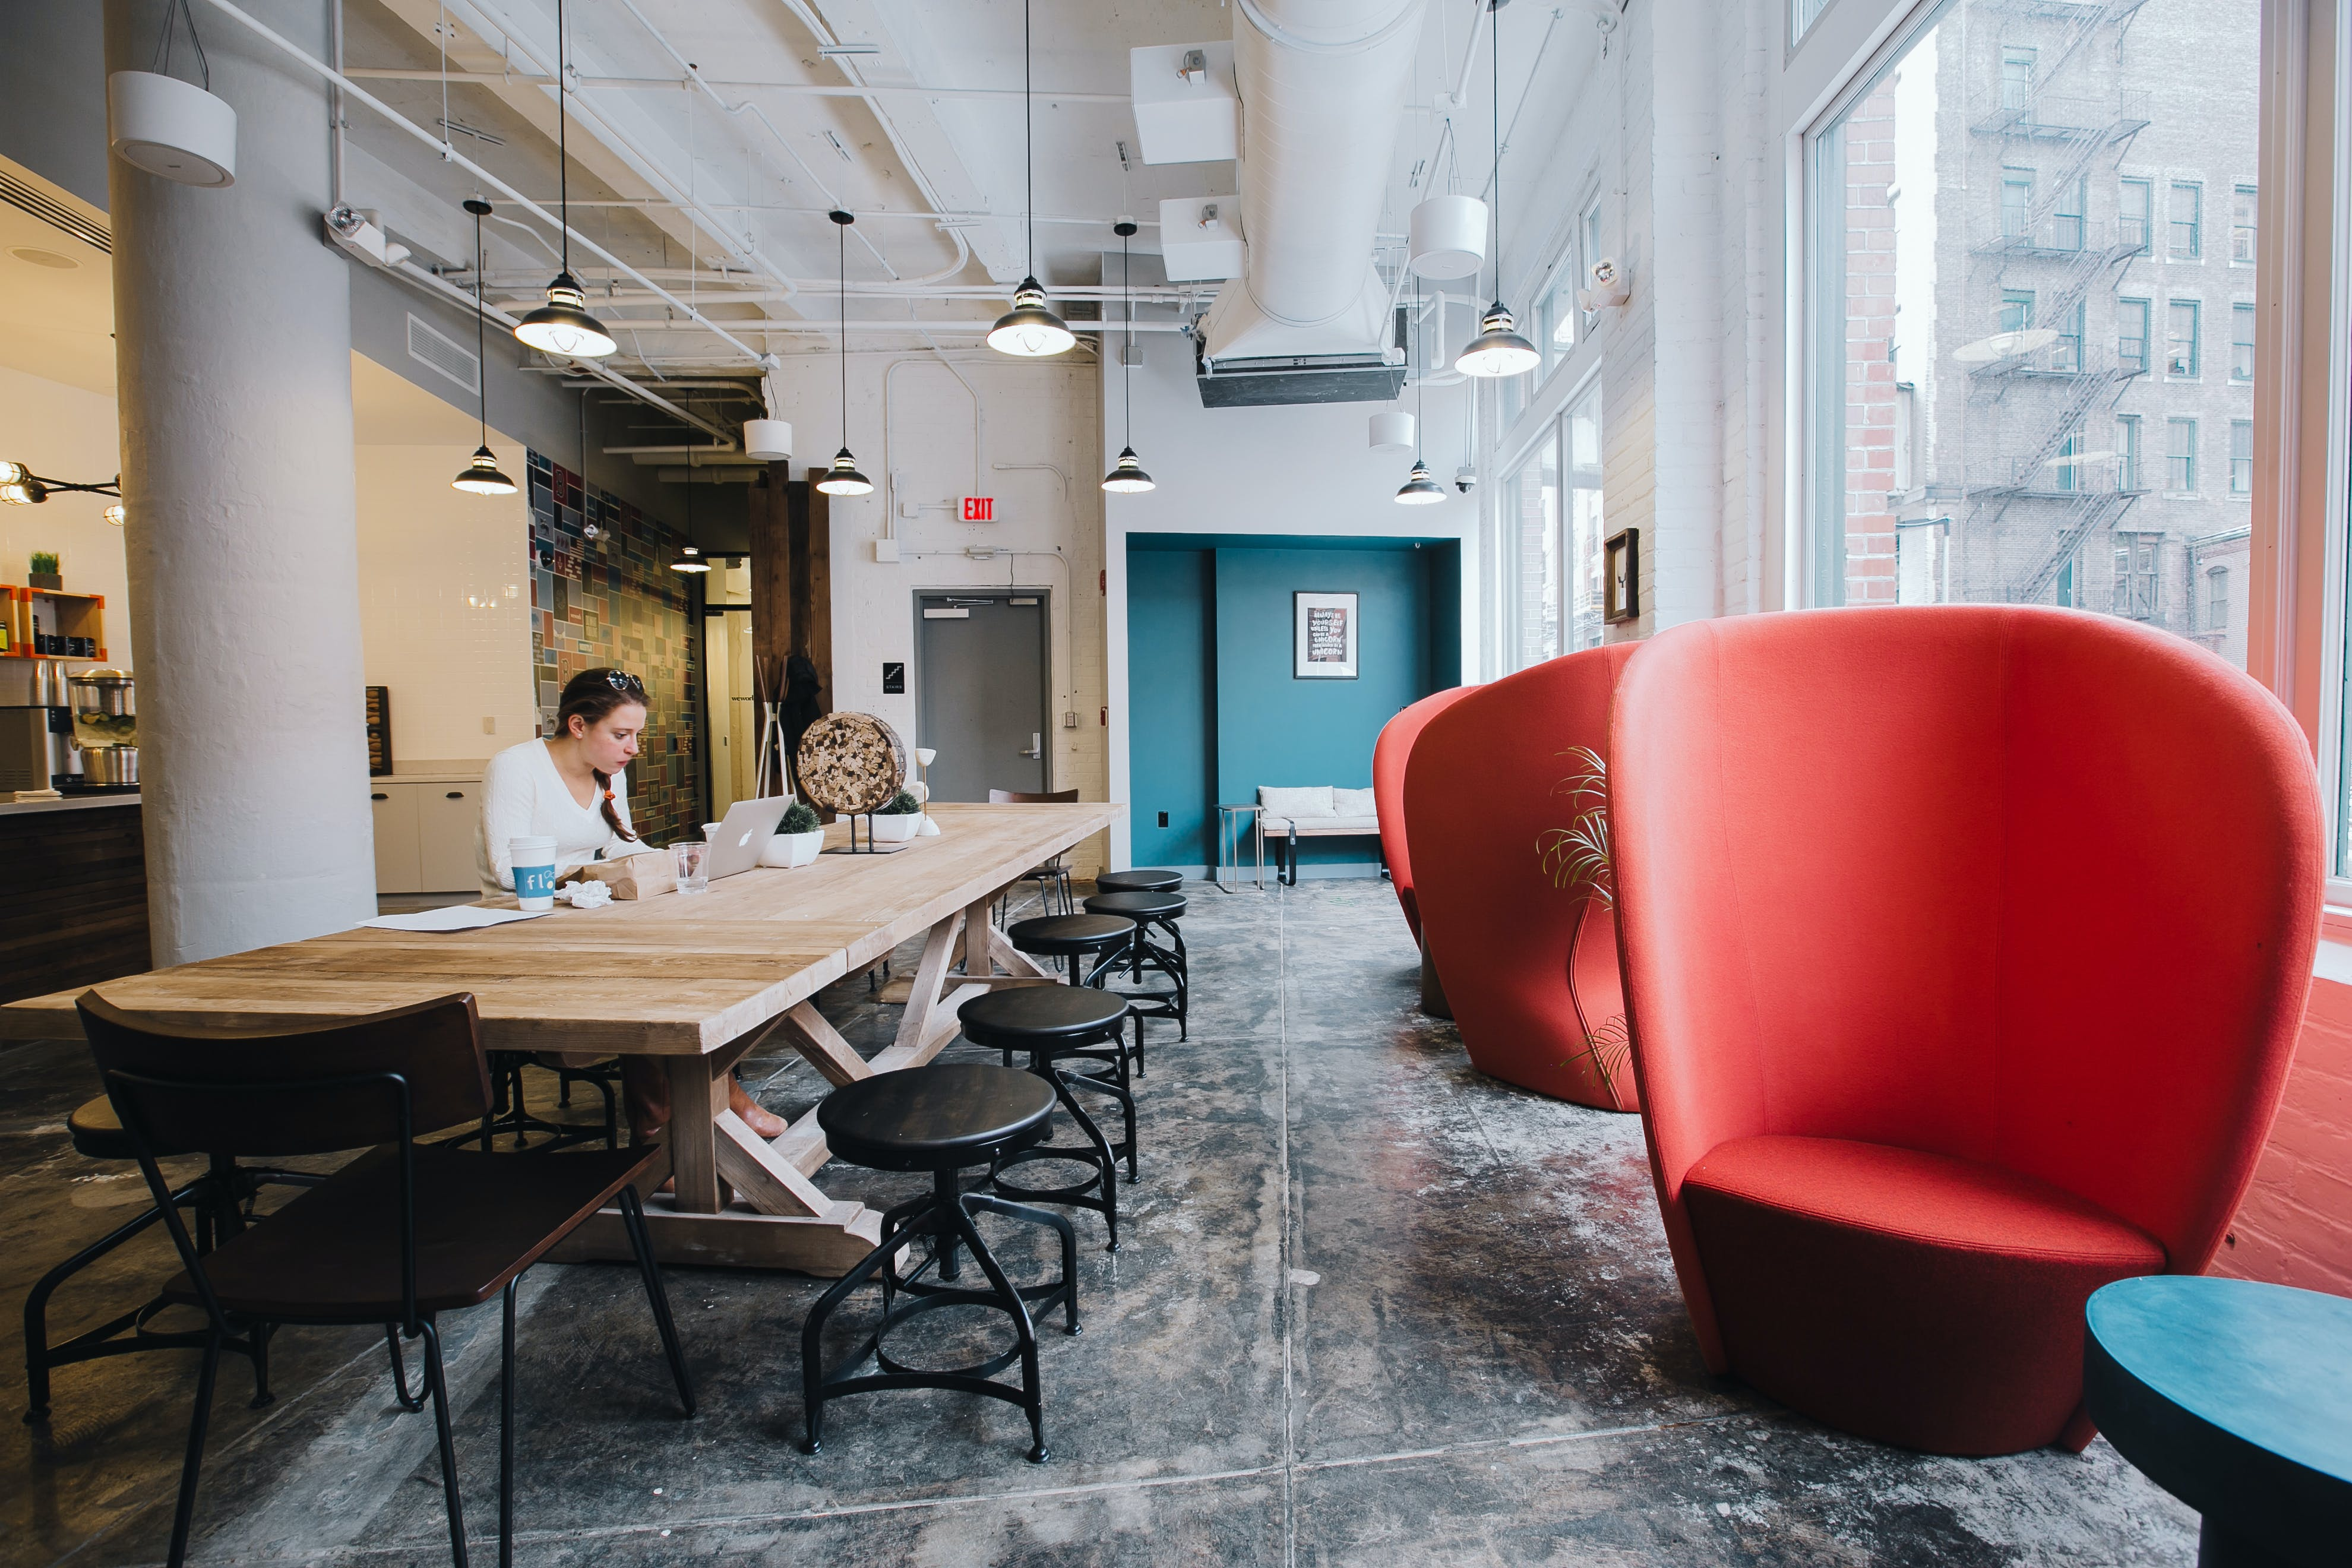 Auto Garage For Rent >> Rent Coworking Space Seaport District Boston | WeWork